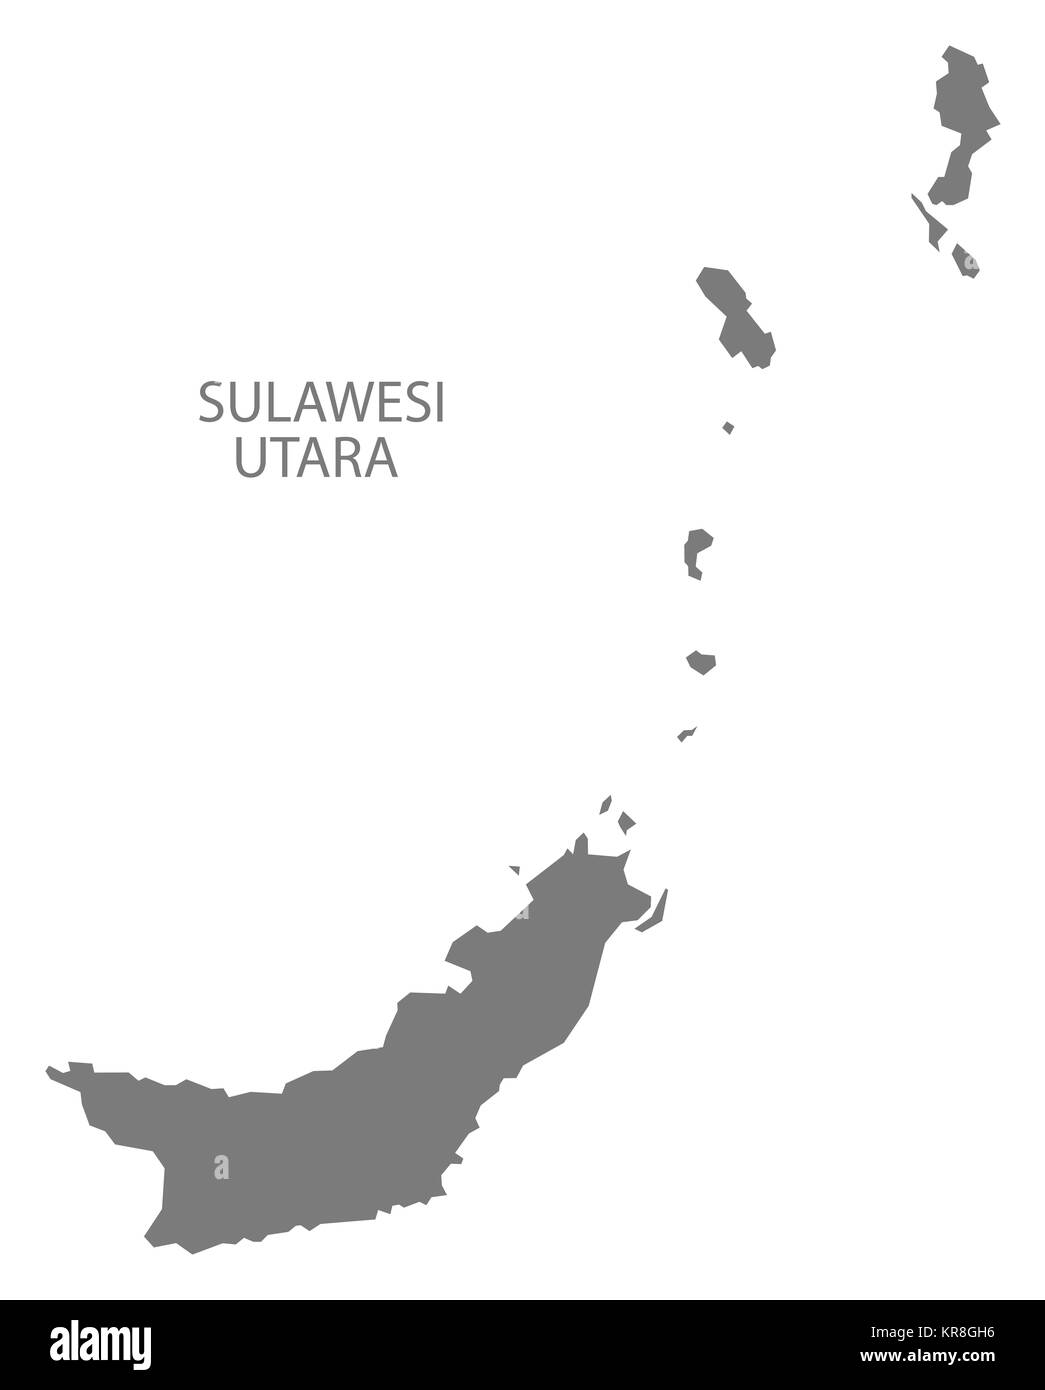 Sulawesi Utara Indonesia Map grey - Stock Image